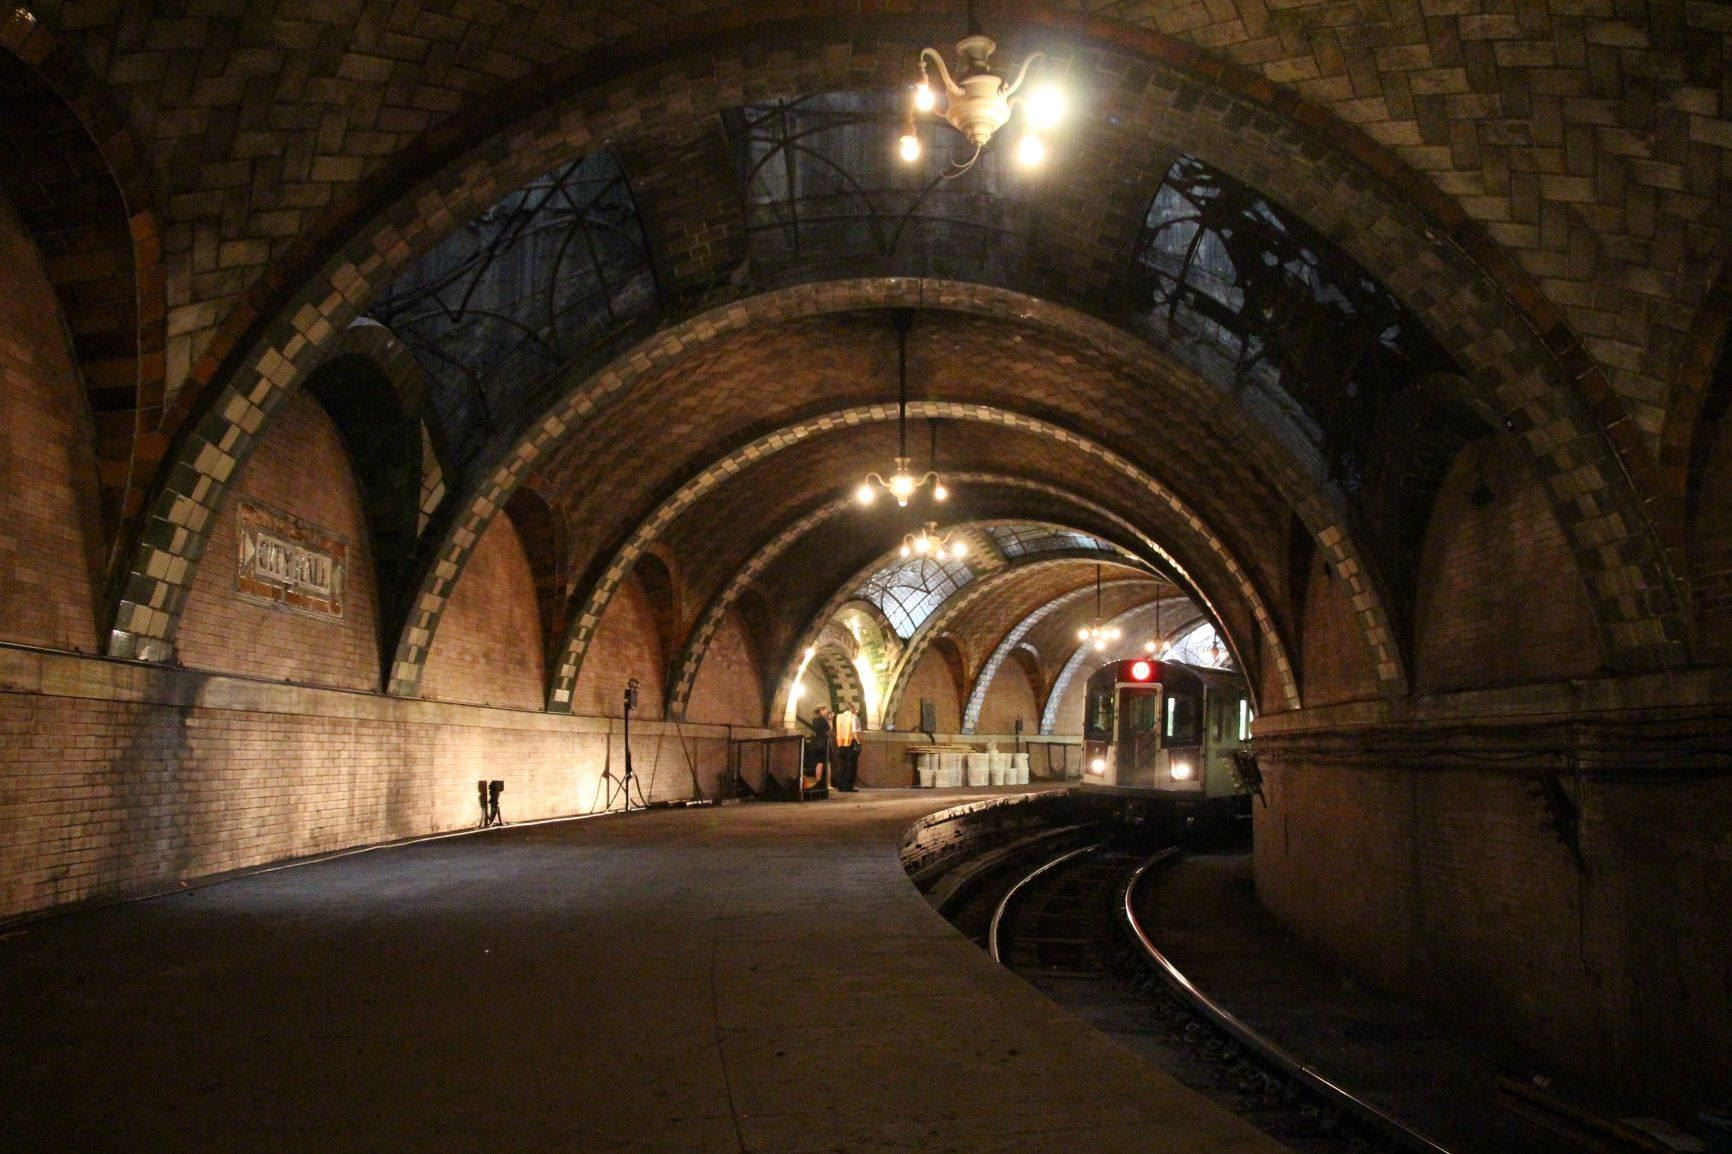 Inside what looks as an old subway stop with large archways and classic subway tile. A subway train car can be seen in the distance.